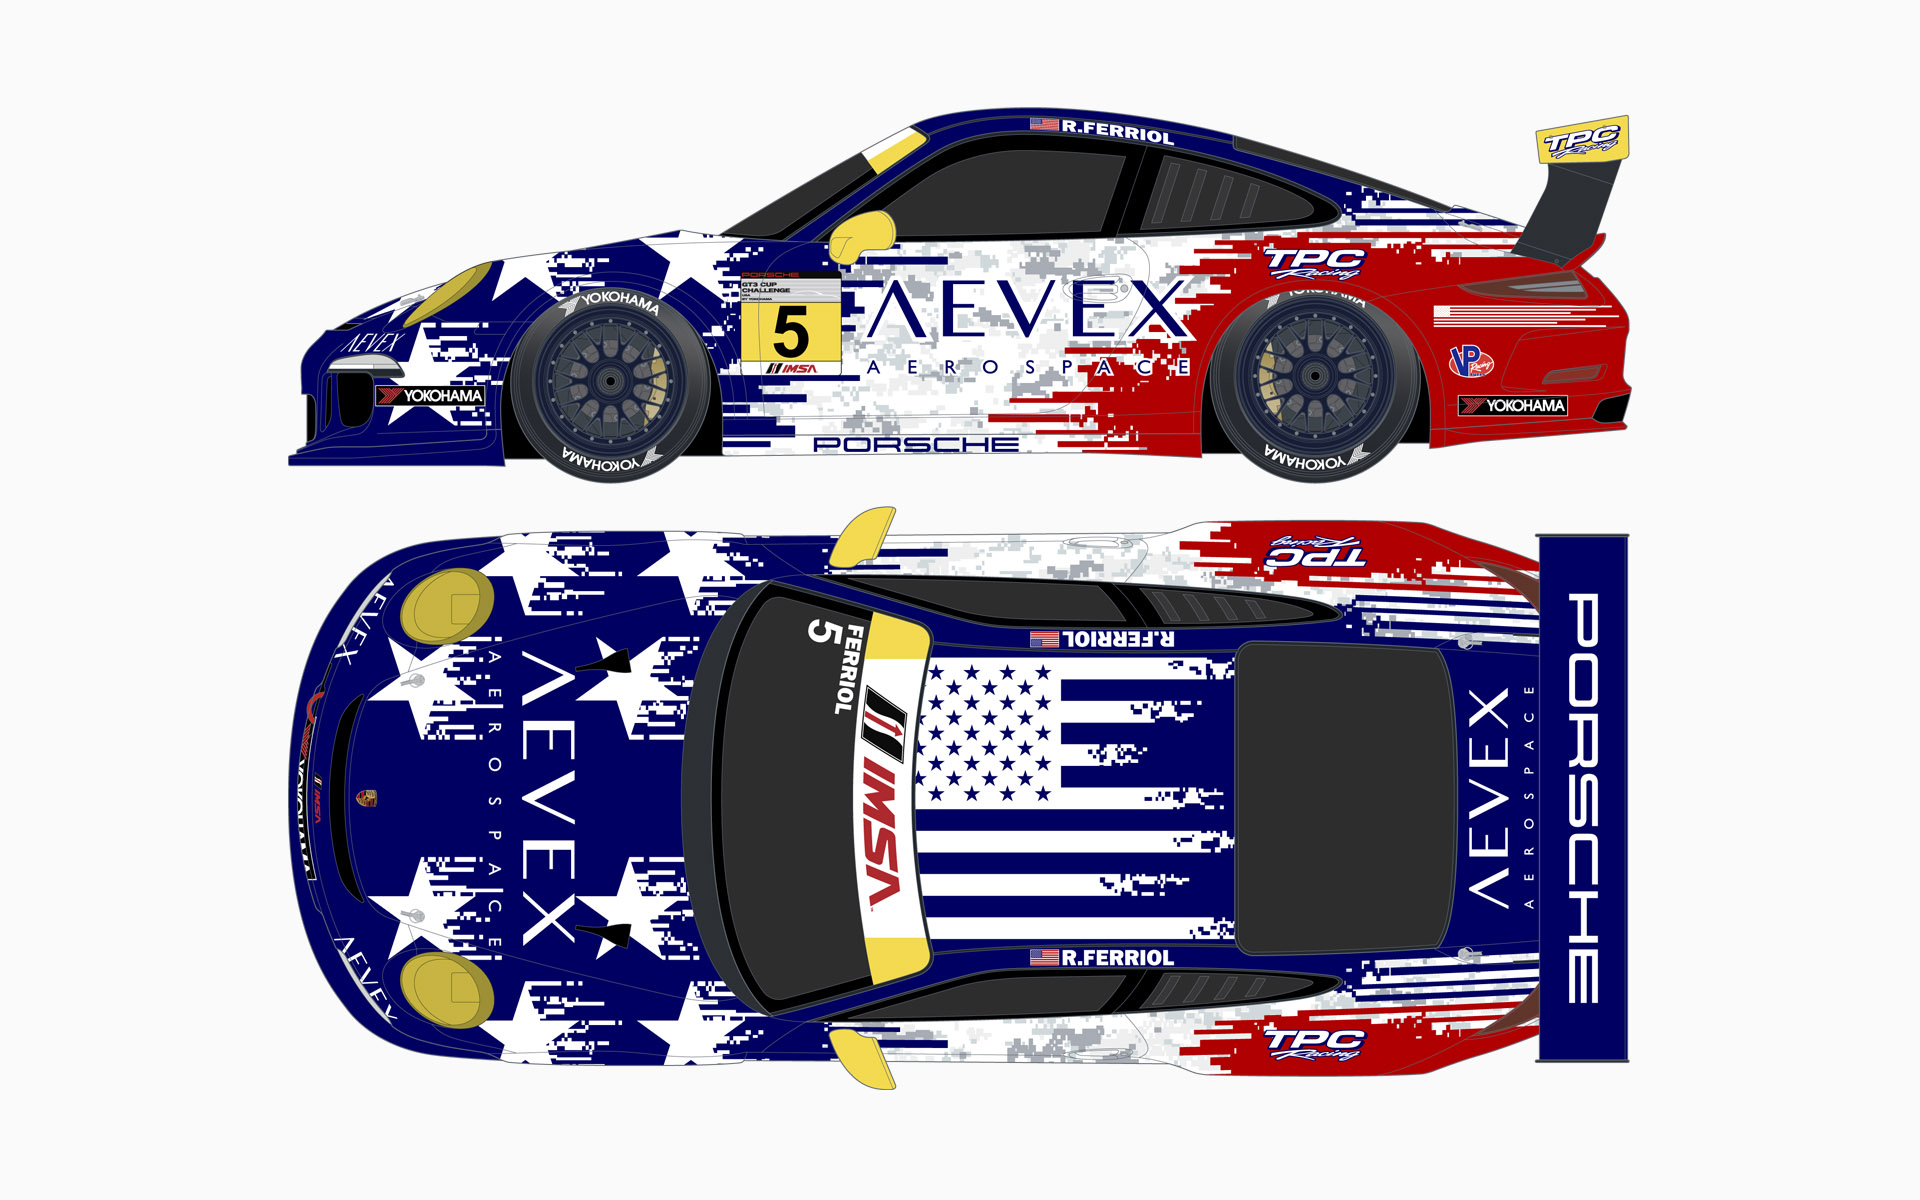 TPC Racing Aevex Aerospace July 4th Porsche 911 GT3 Cup Livery Elevations